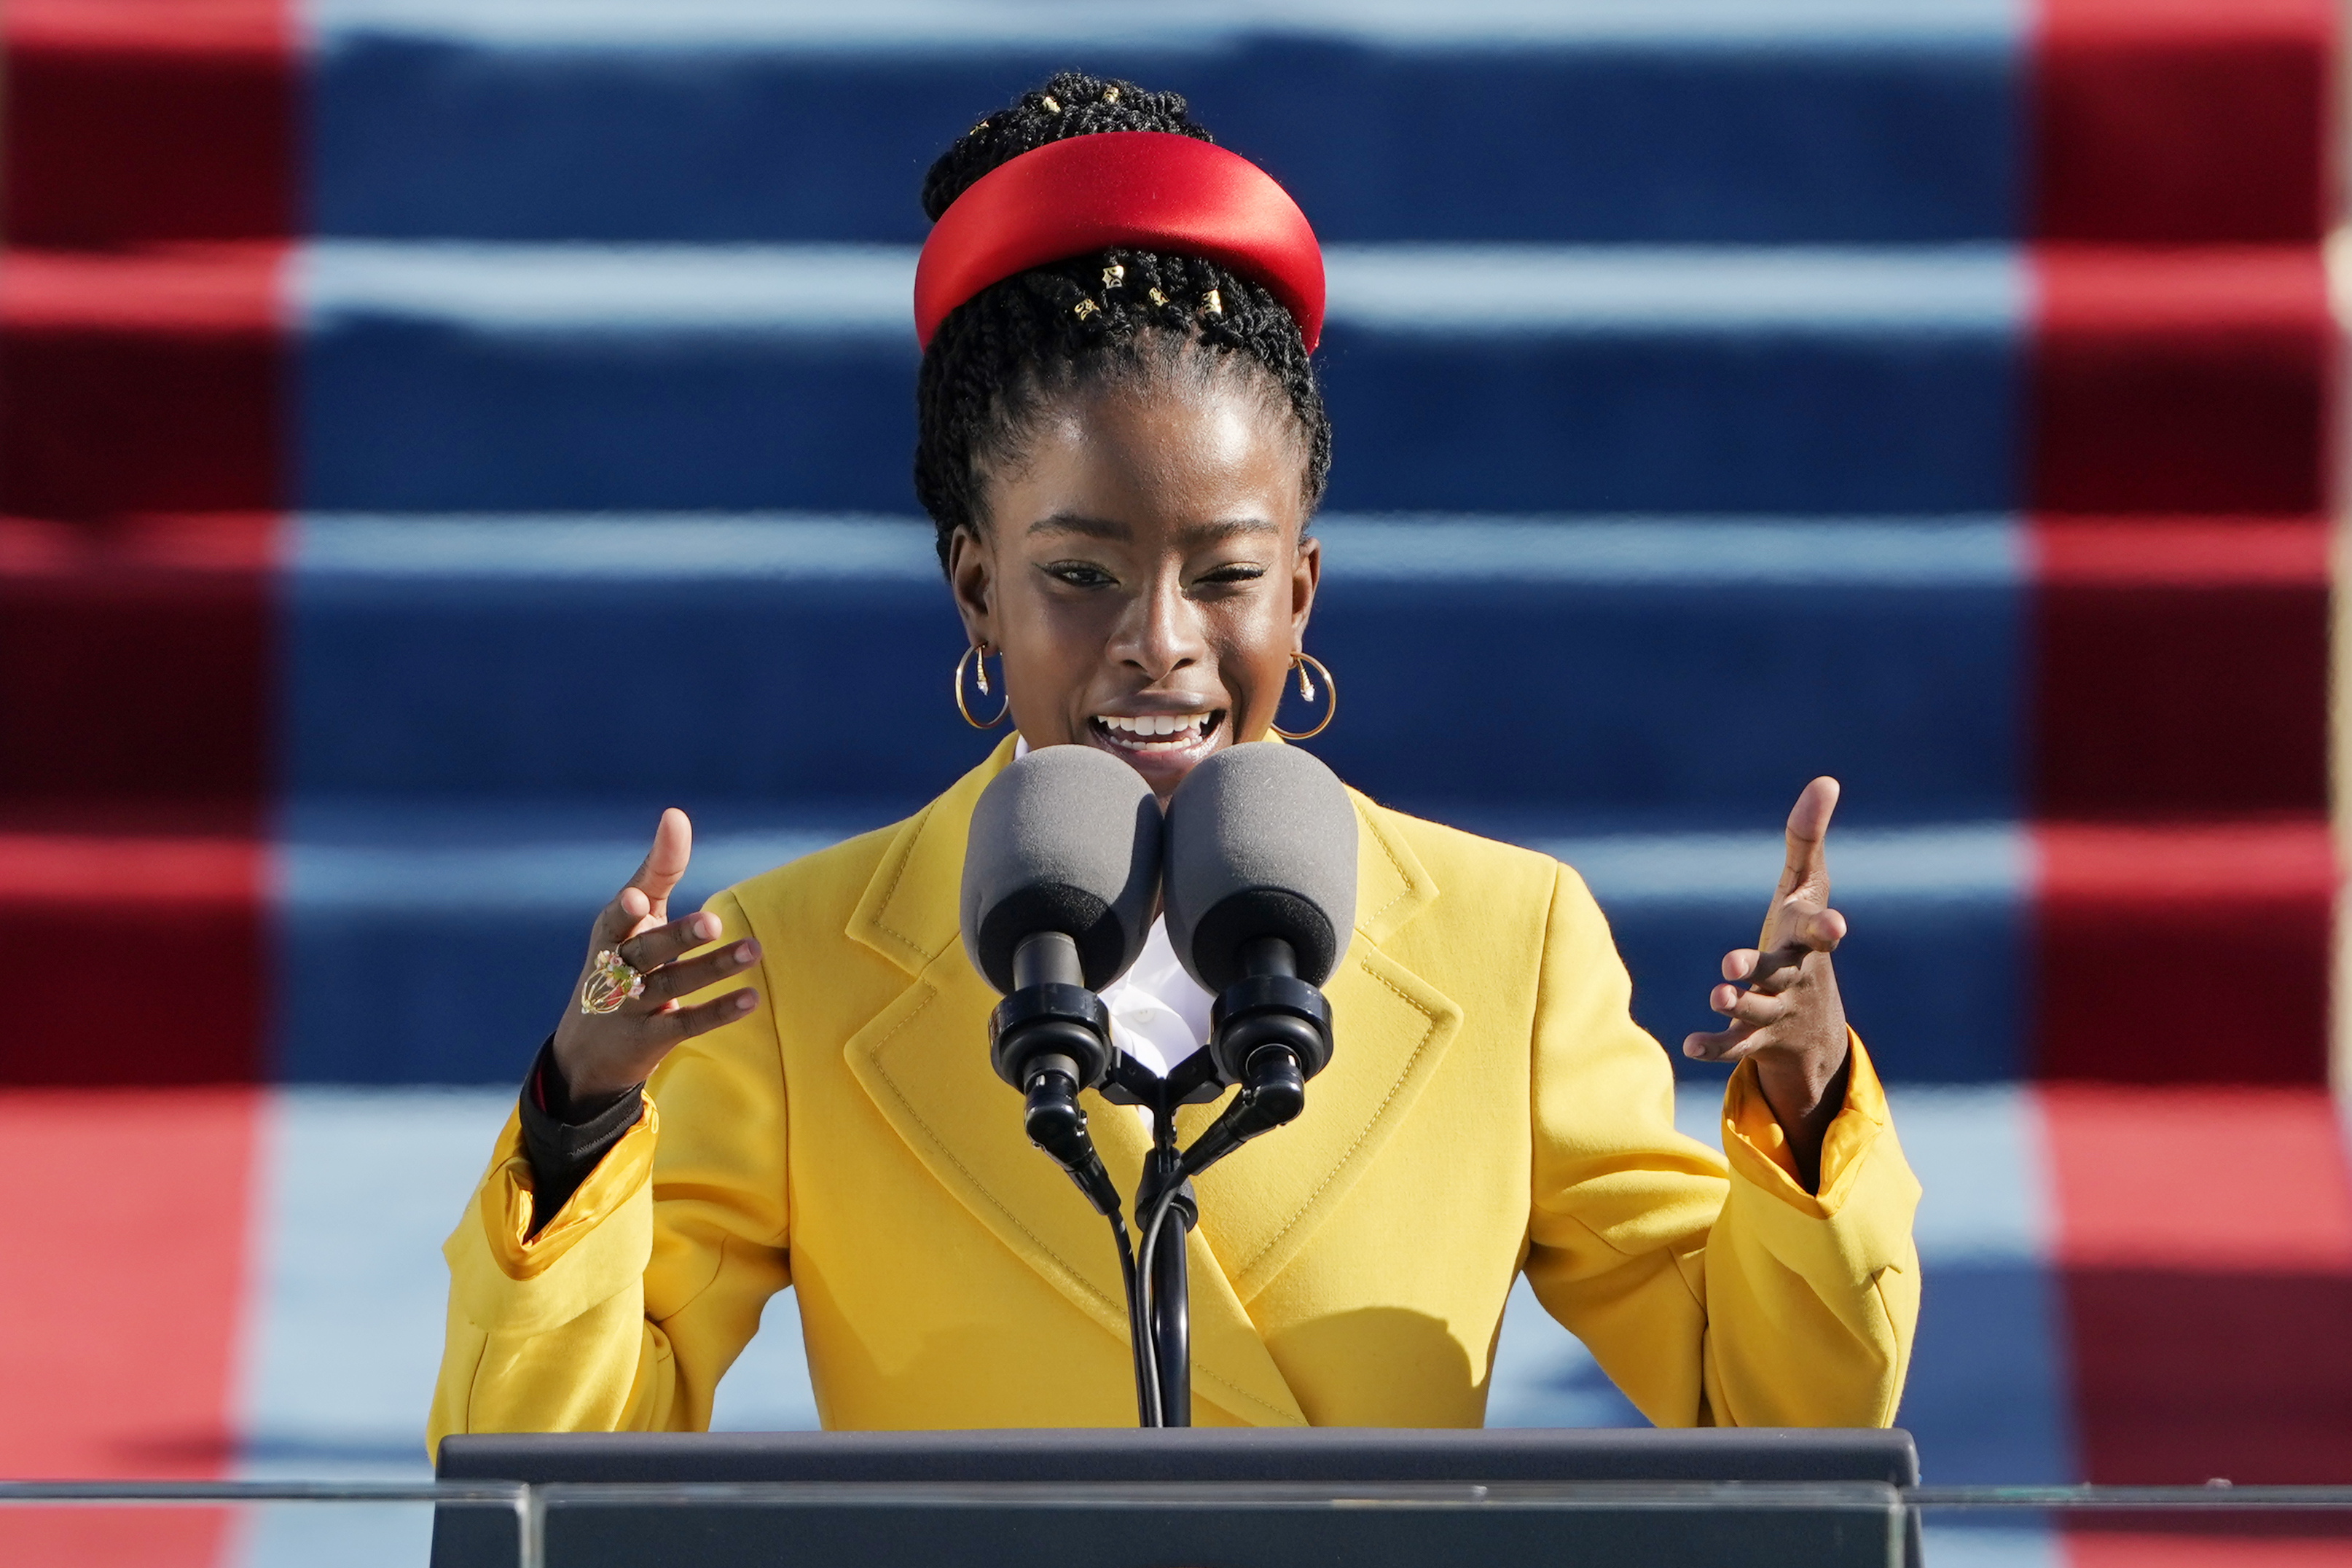 American poet Amanda Gorman reads a poem during the 59th Presidential Inauguration at the U.S. Capitol in Washington, Wednesday, Jan. 20, 2021. Photo: AP